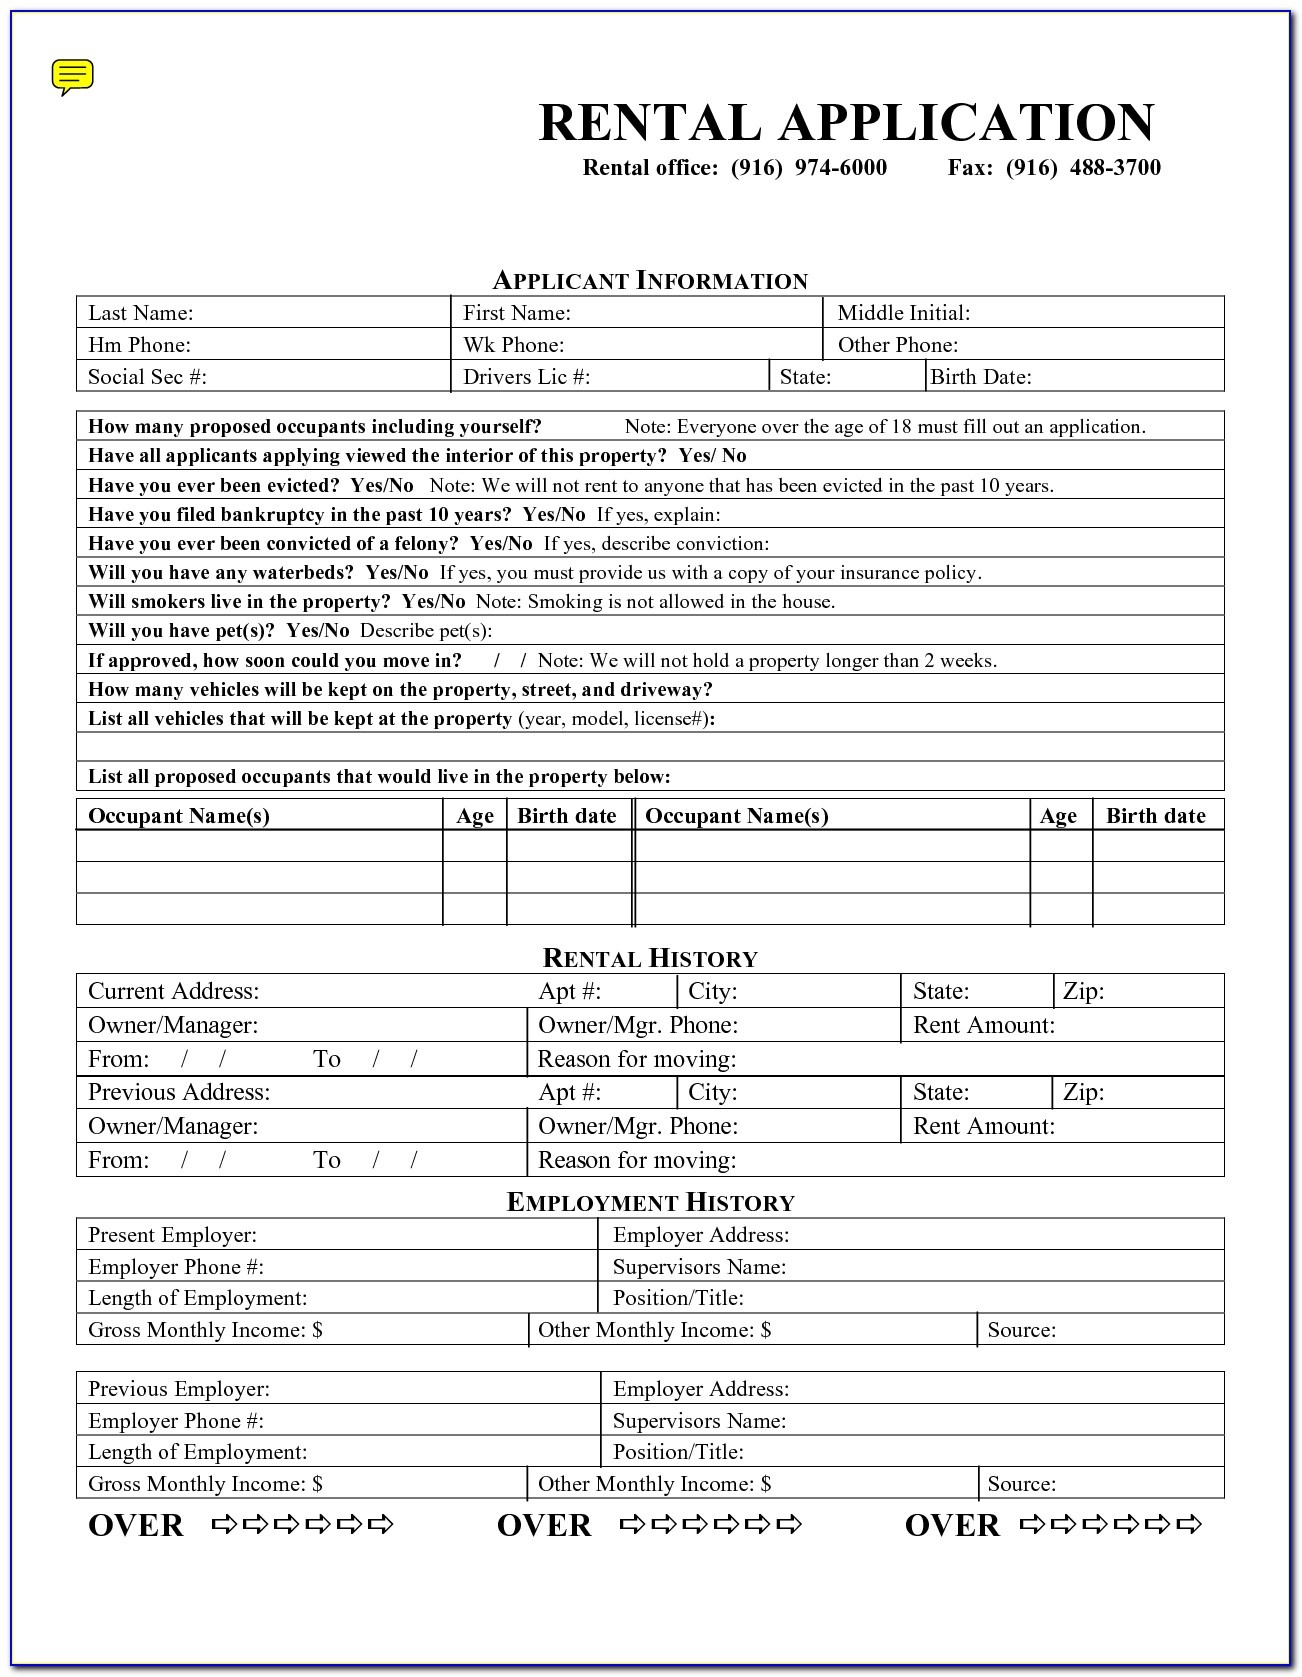 Rental Application Forms Free Printable - Form : Resume Examples - Free Printable Forms